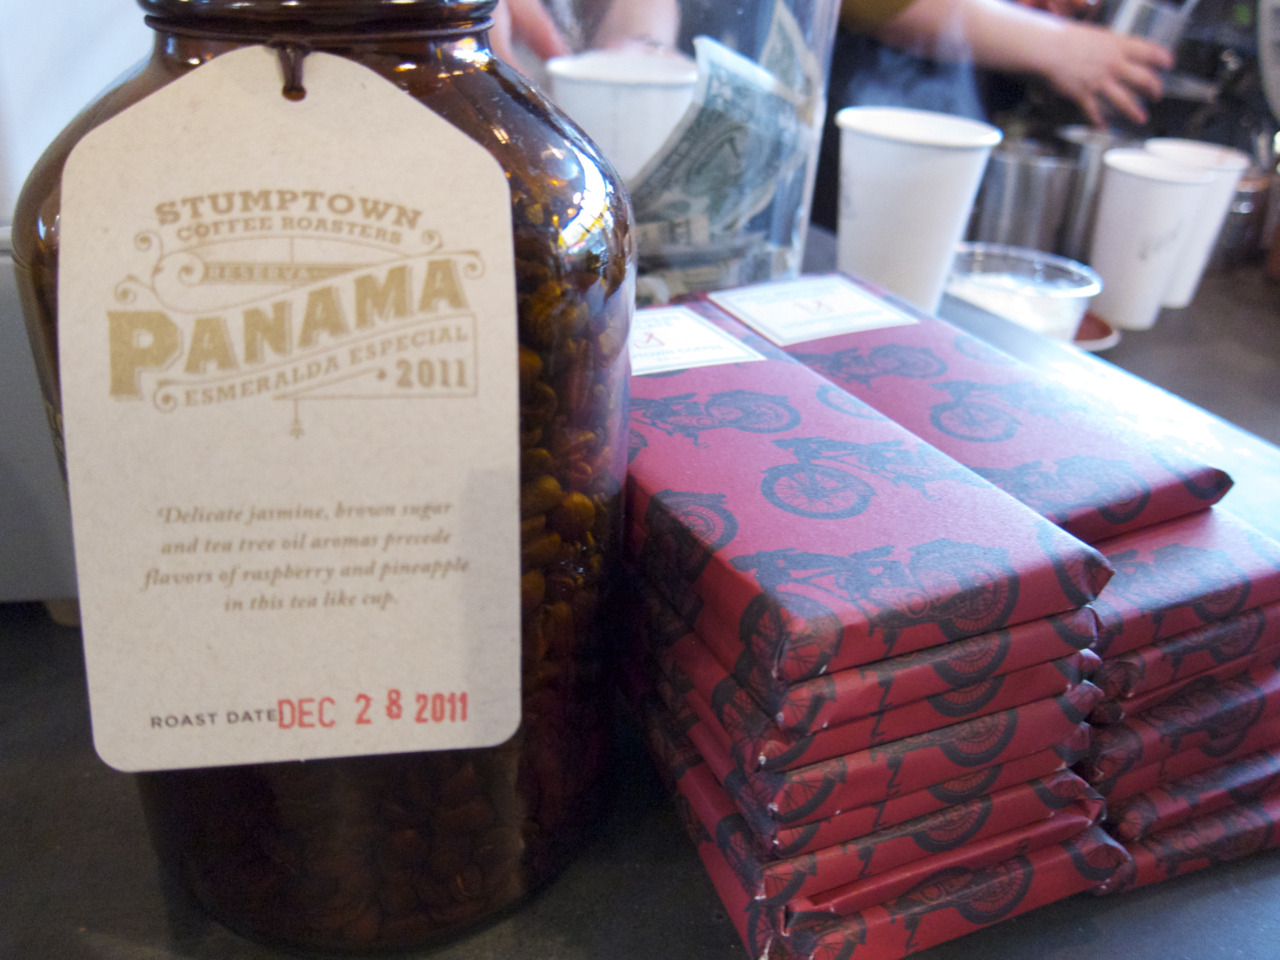 Panamanian coffee and Mast Brothers chocolate bars.